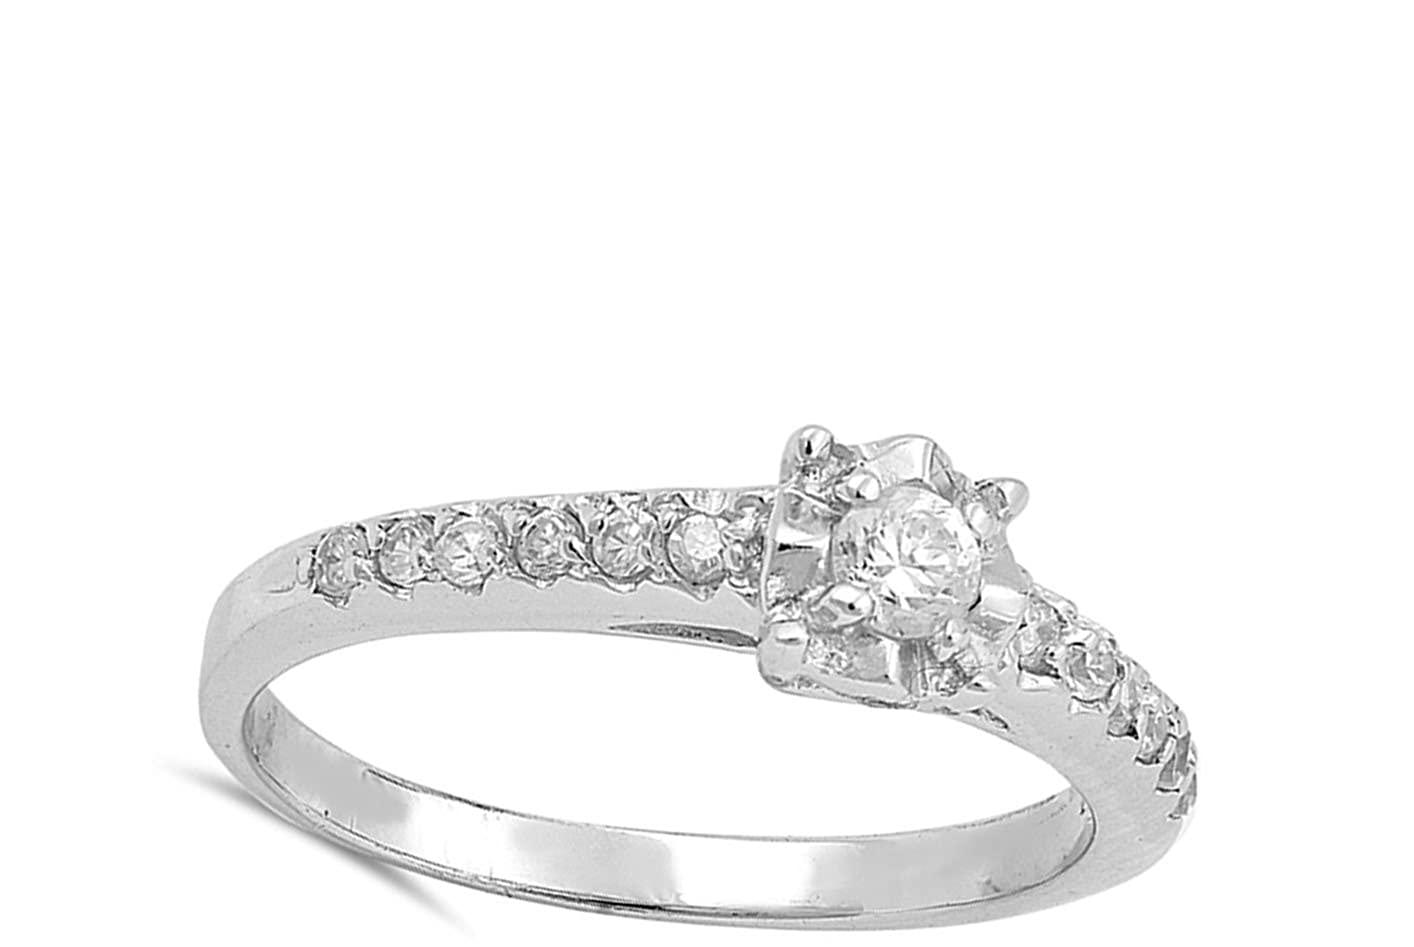 Clear CZ Polished Wedding Ring New .925 Sterling Silver Band Sizes 5-10